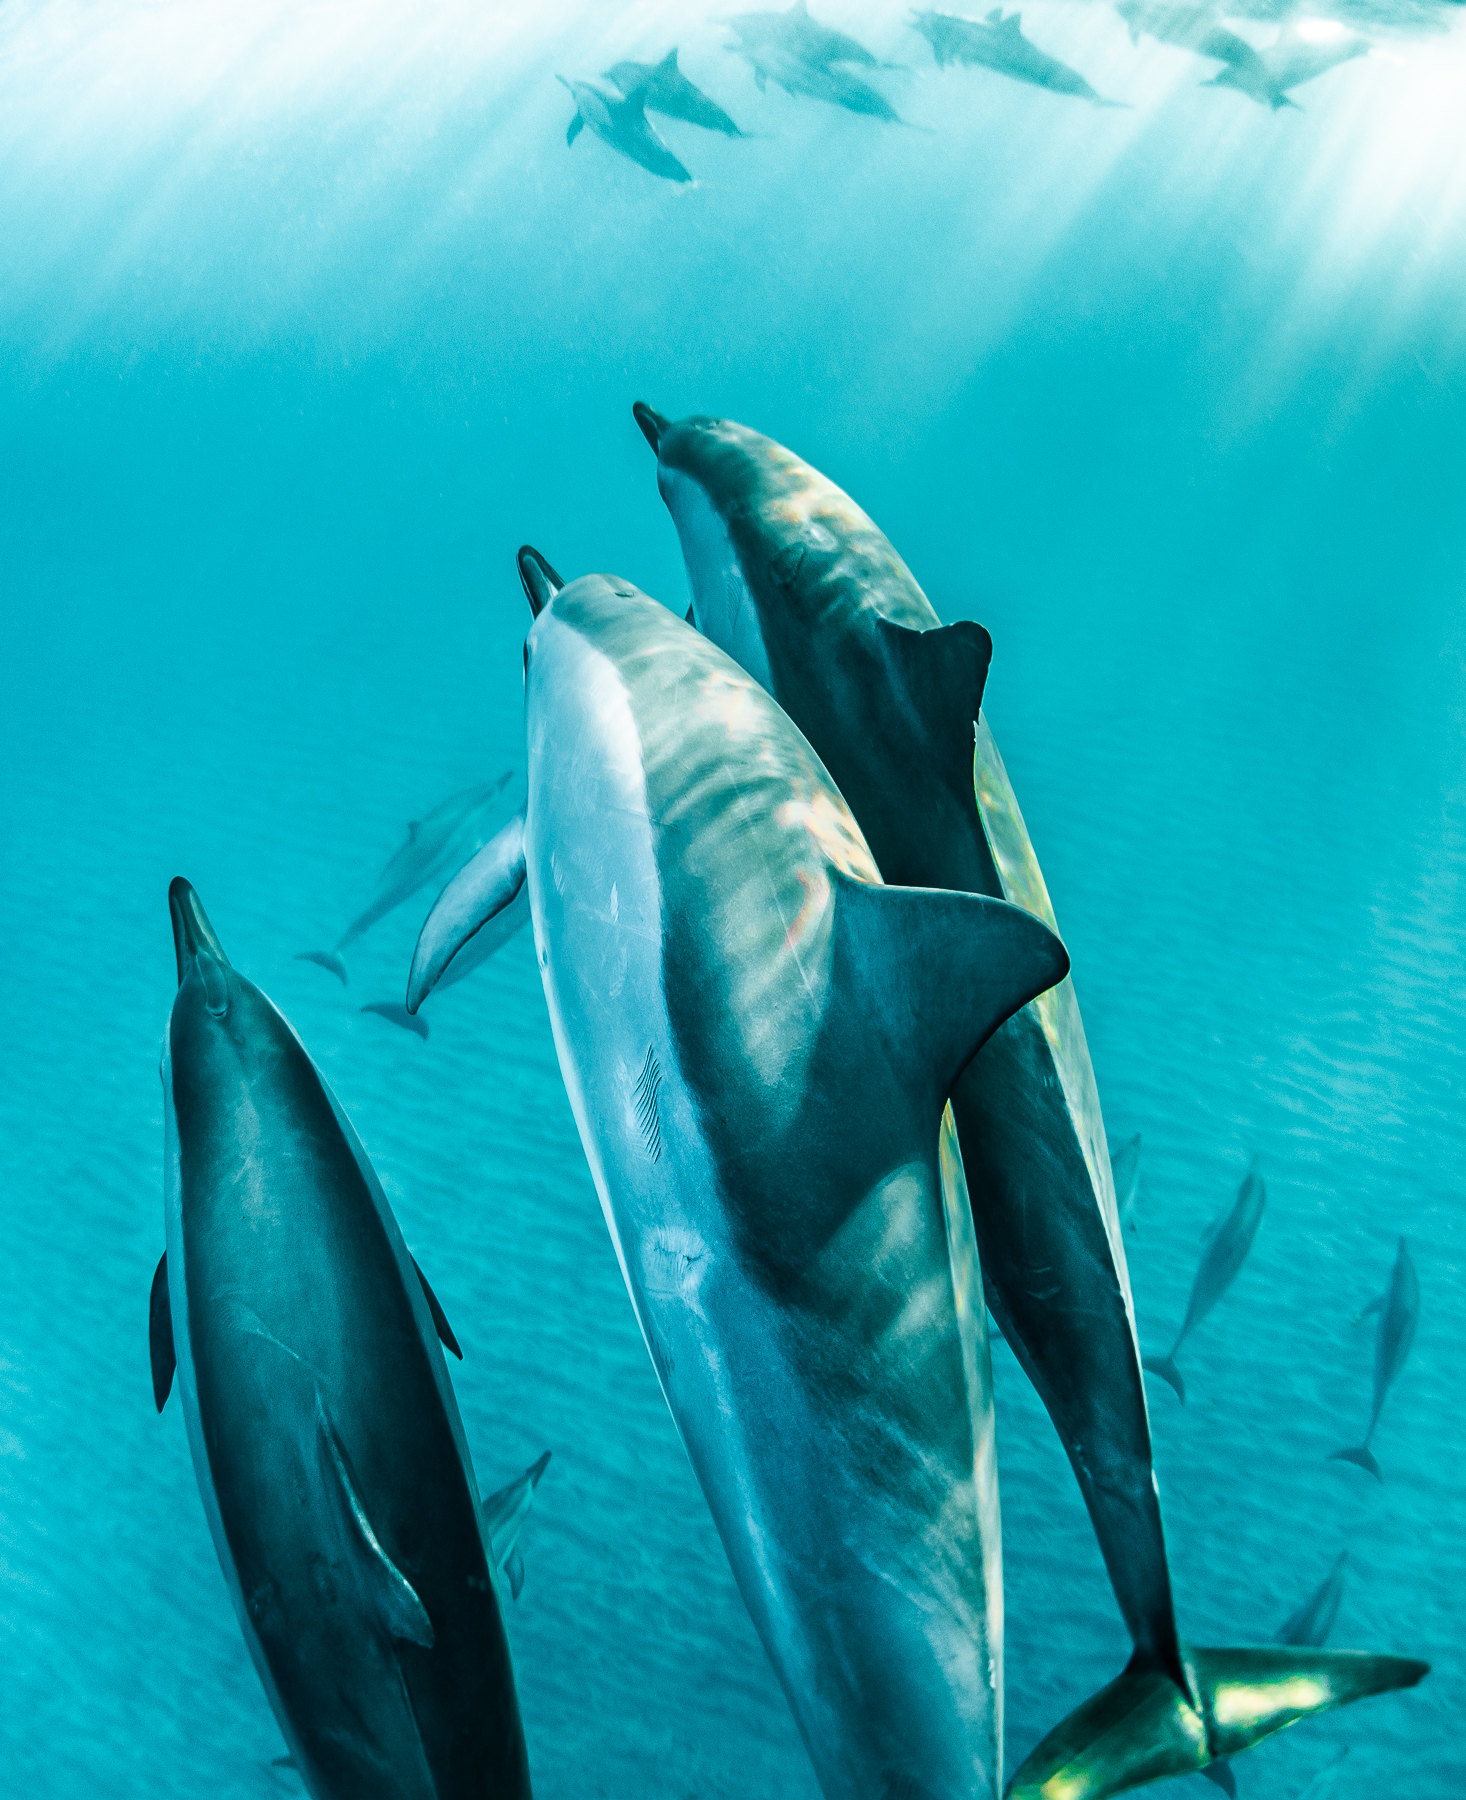 Sander_Cummings_Dolphins and Their Ways_Sunrise Joy_2.jpg